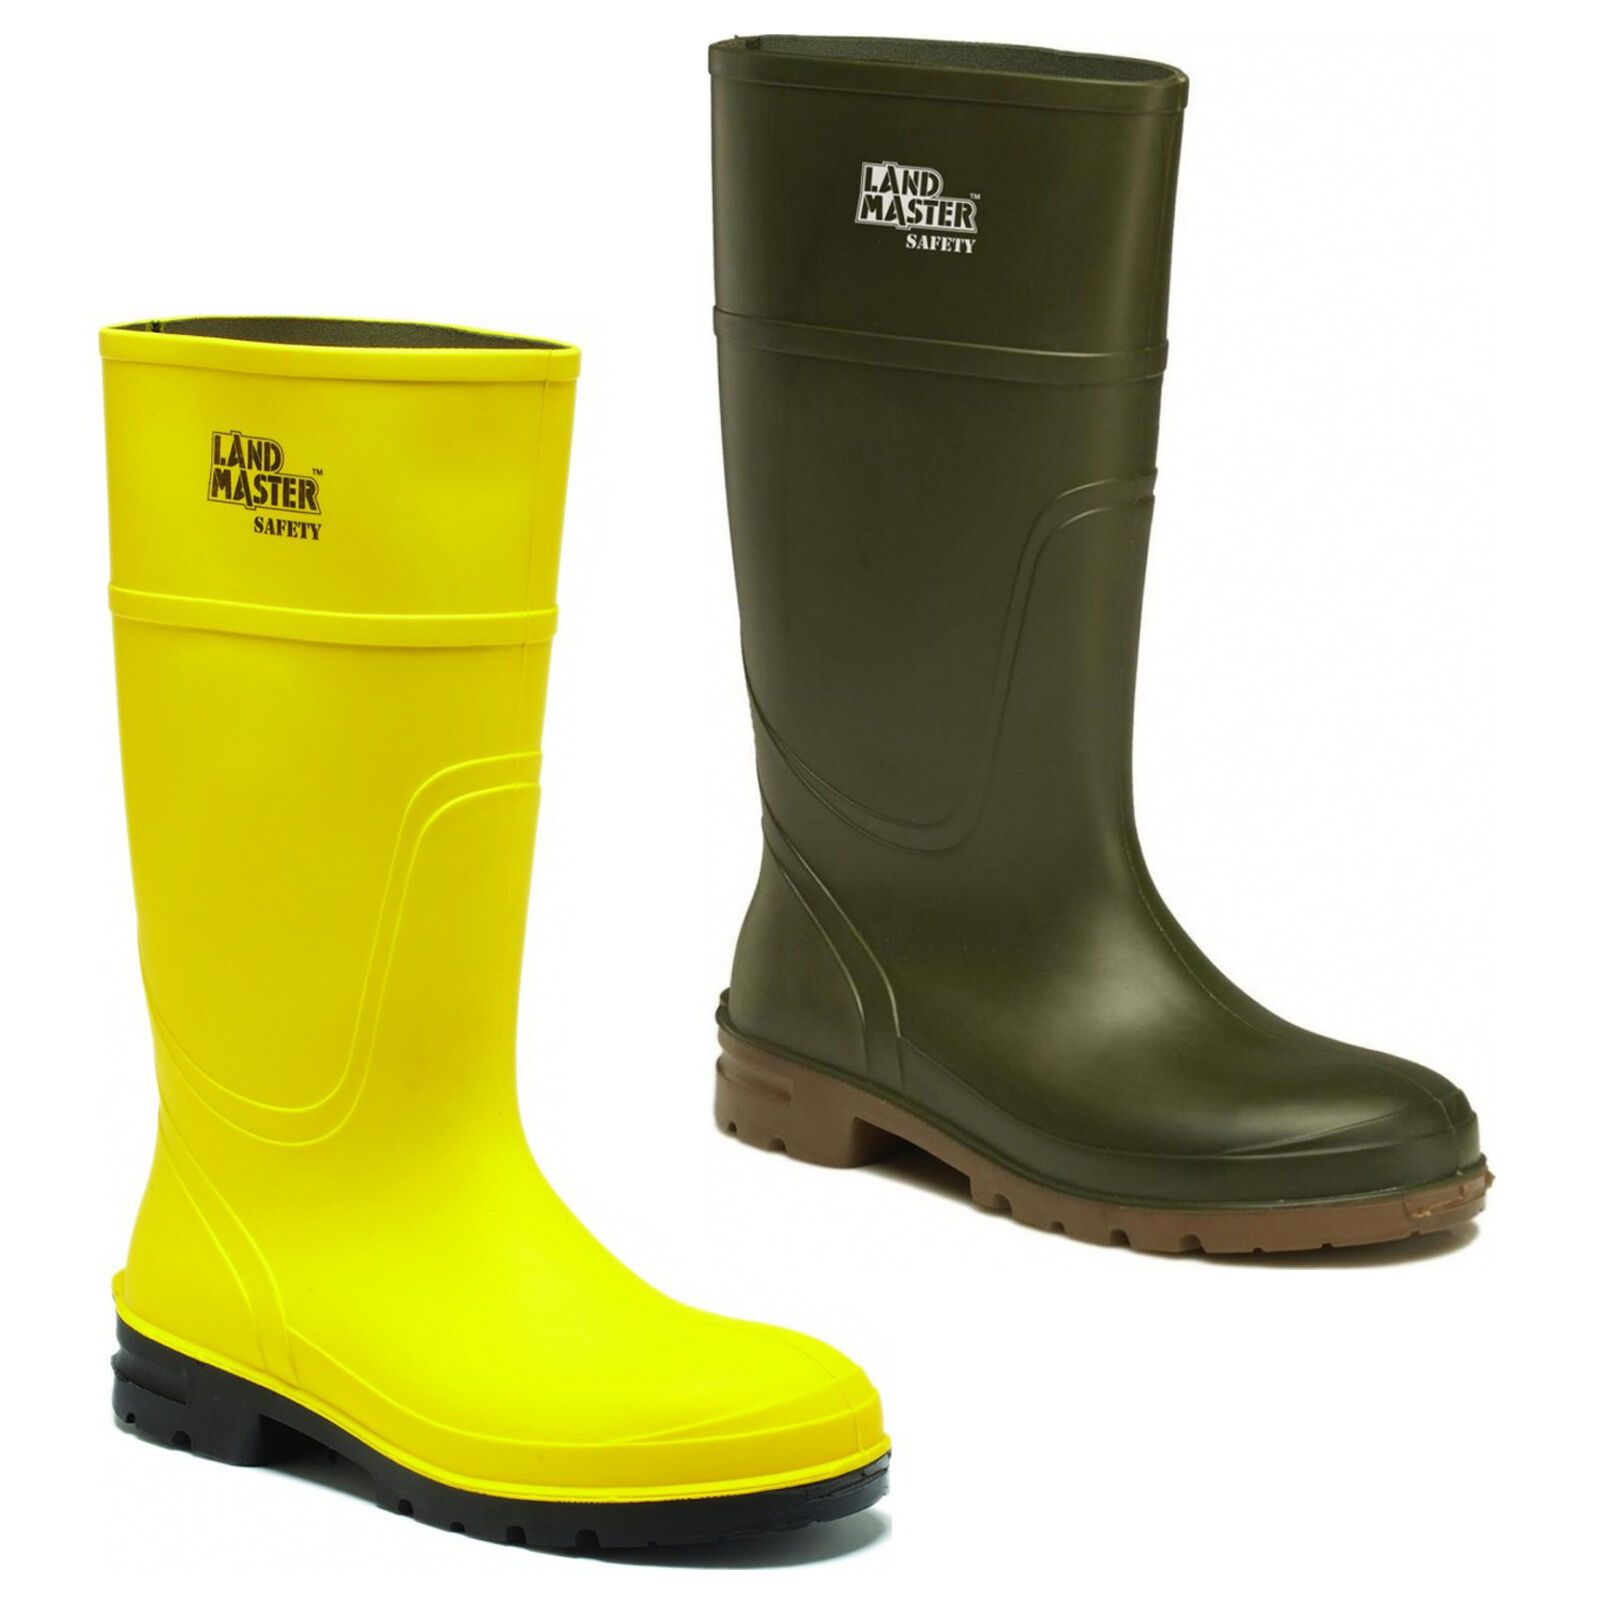 Dickies LANDMASTER Safety s5 Wellingtons IMPERMEABILE IN ACCIAIO PUNTALE STIVALI uk6-12